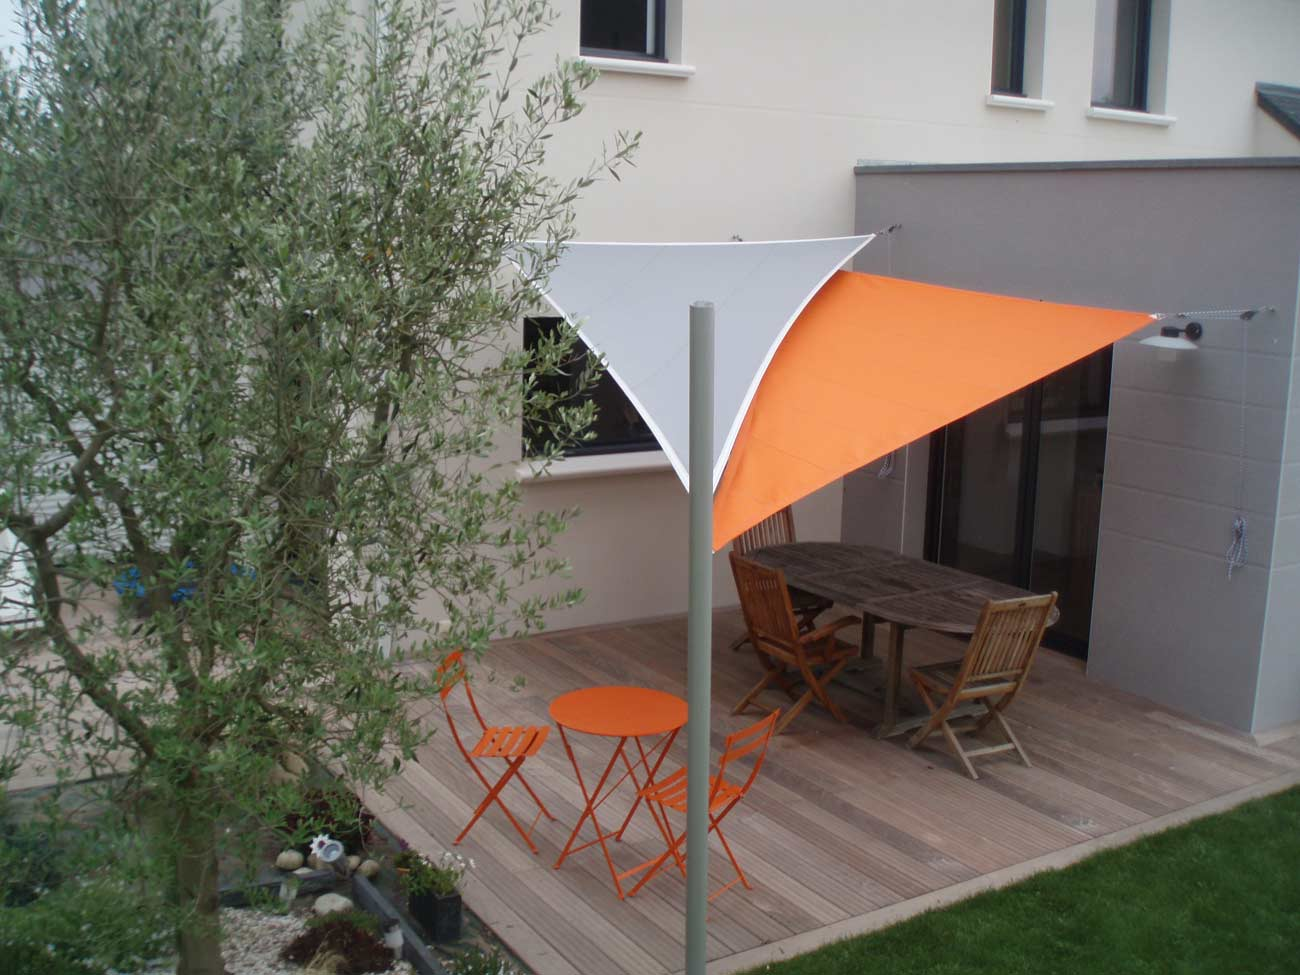 des voiles triangles plus design quun store banne